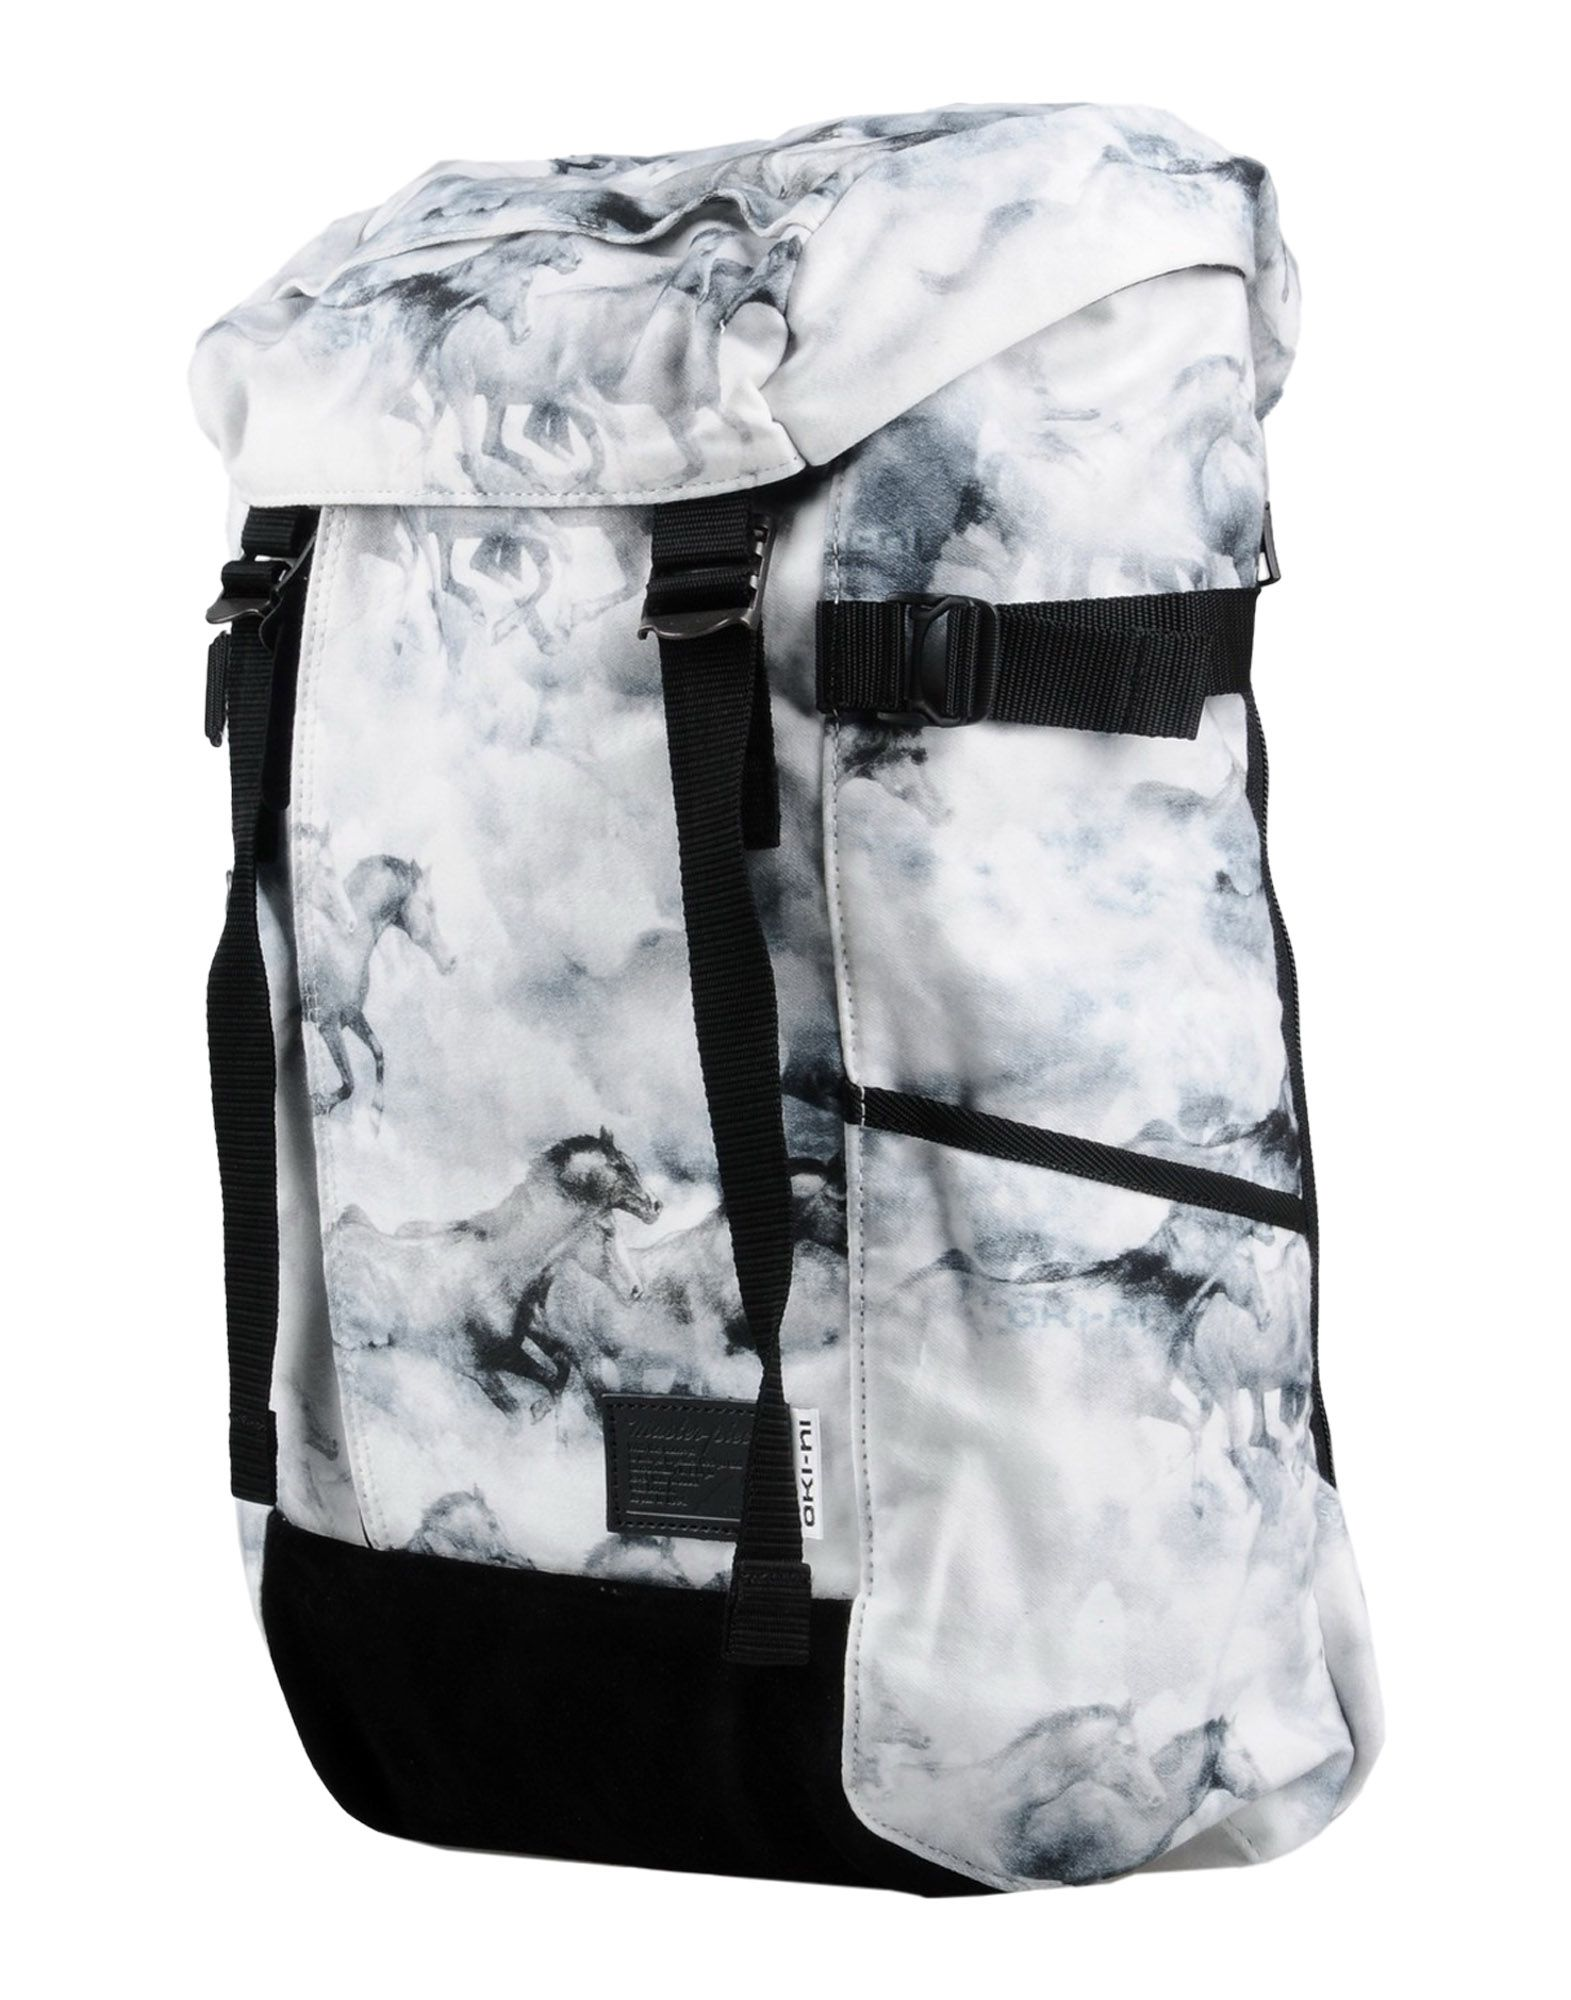 MASTER-PIECE | MASTER PIECE Backpacks & Fanny packs 45410857 | Goxip